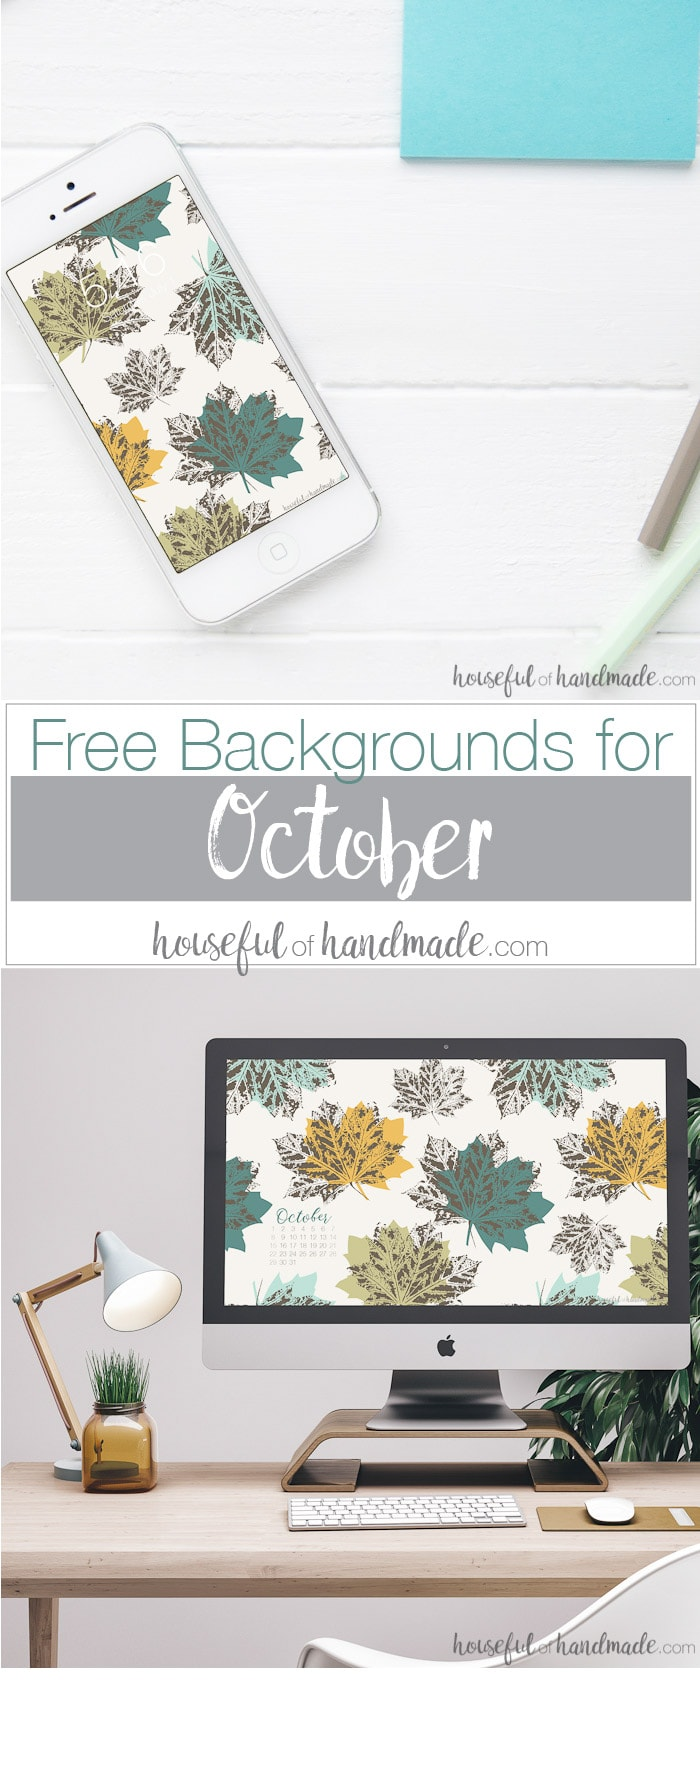 Download these free digital backgrounds for October to decorate your electronics for fall. Includes free digital wallpaper for your computer and smartphone. Housefulofhandmade.com